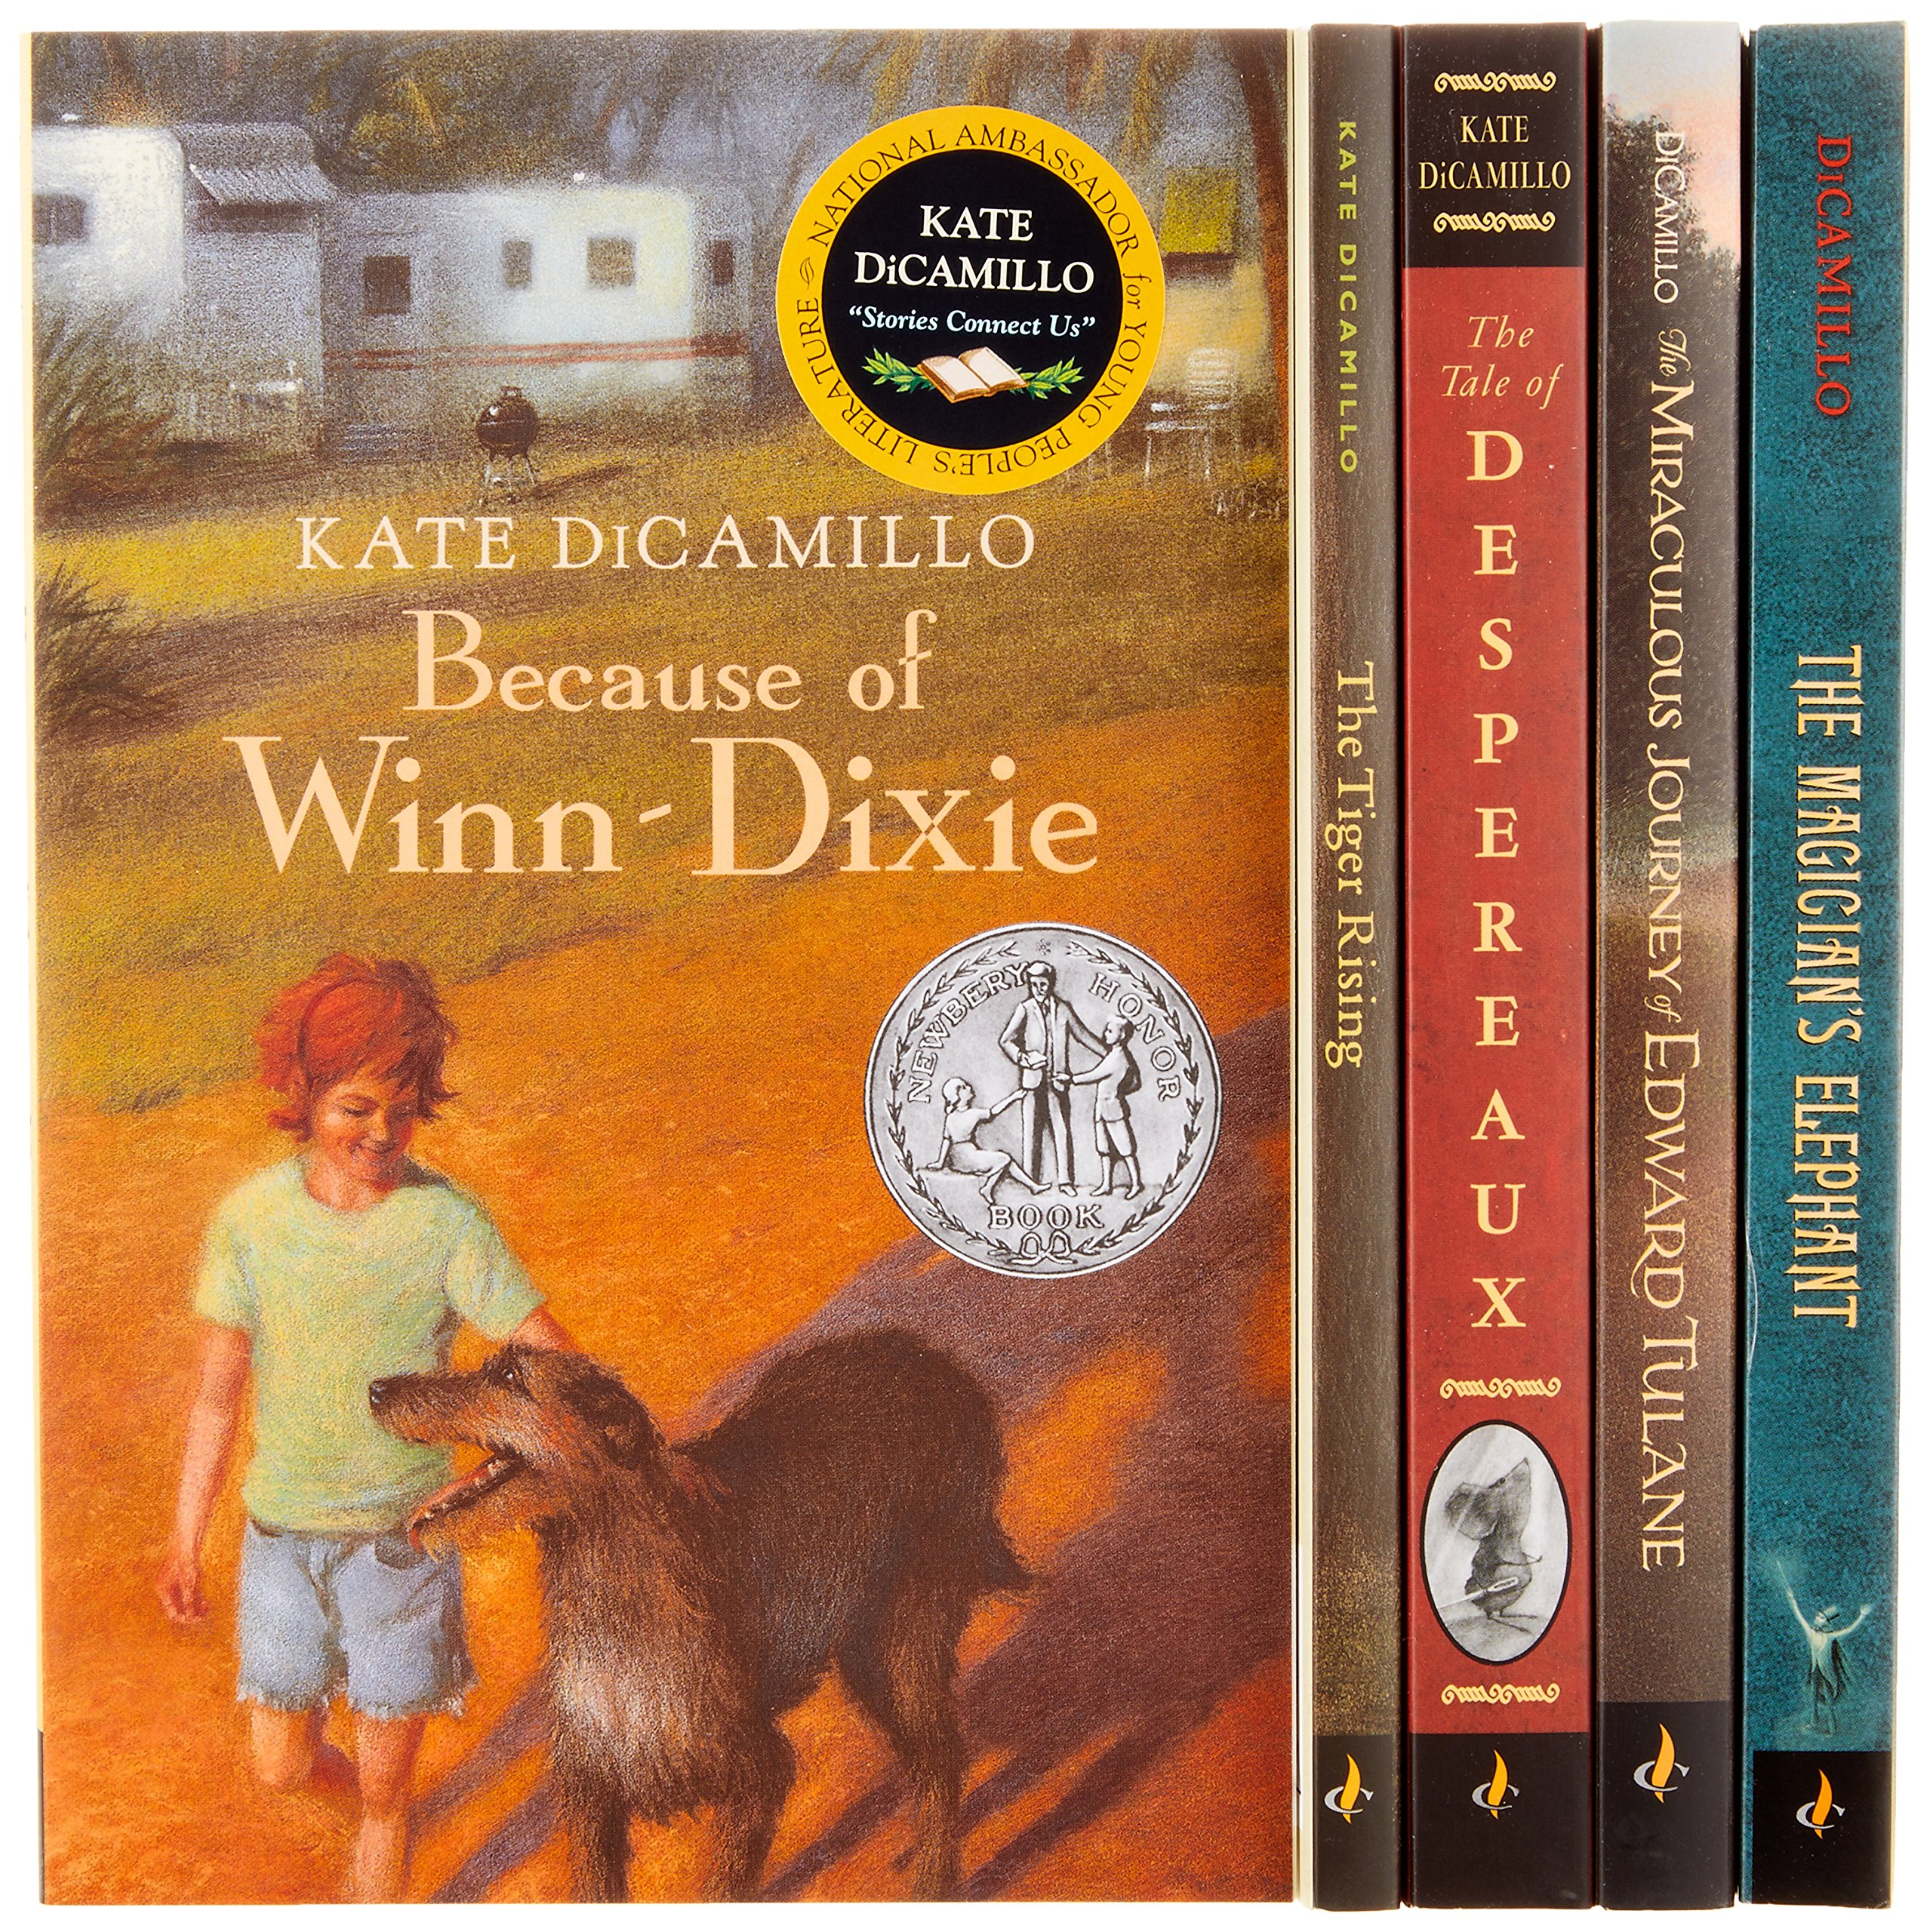 Review of winn dixie free appliances - The Essential Kate Dicamillo Collection Kate Dicamillo 9780763675806 Amazon Com Books